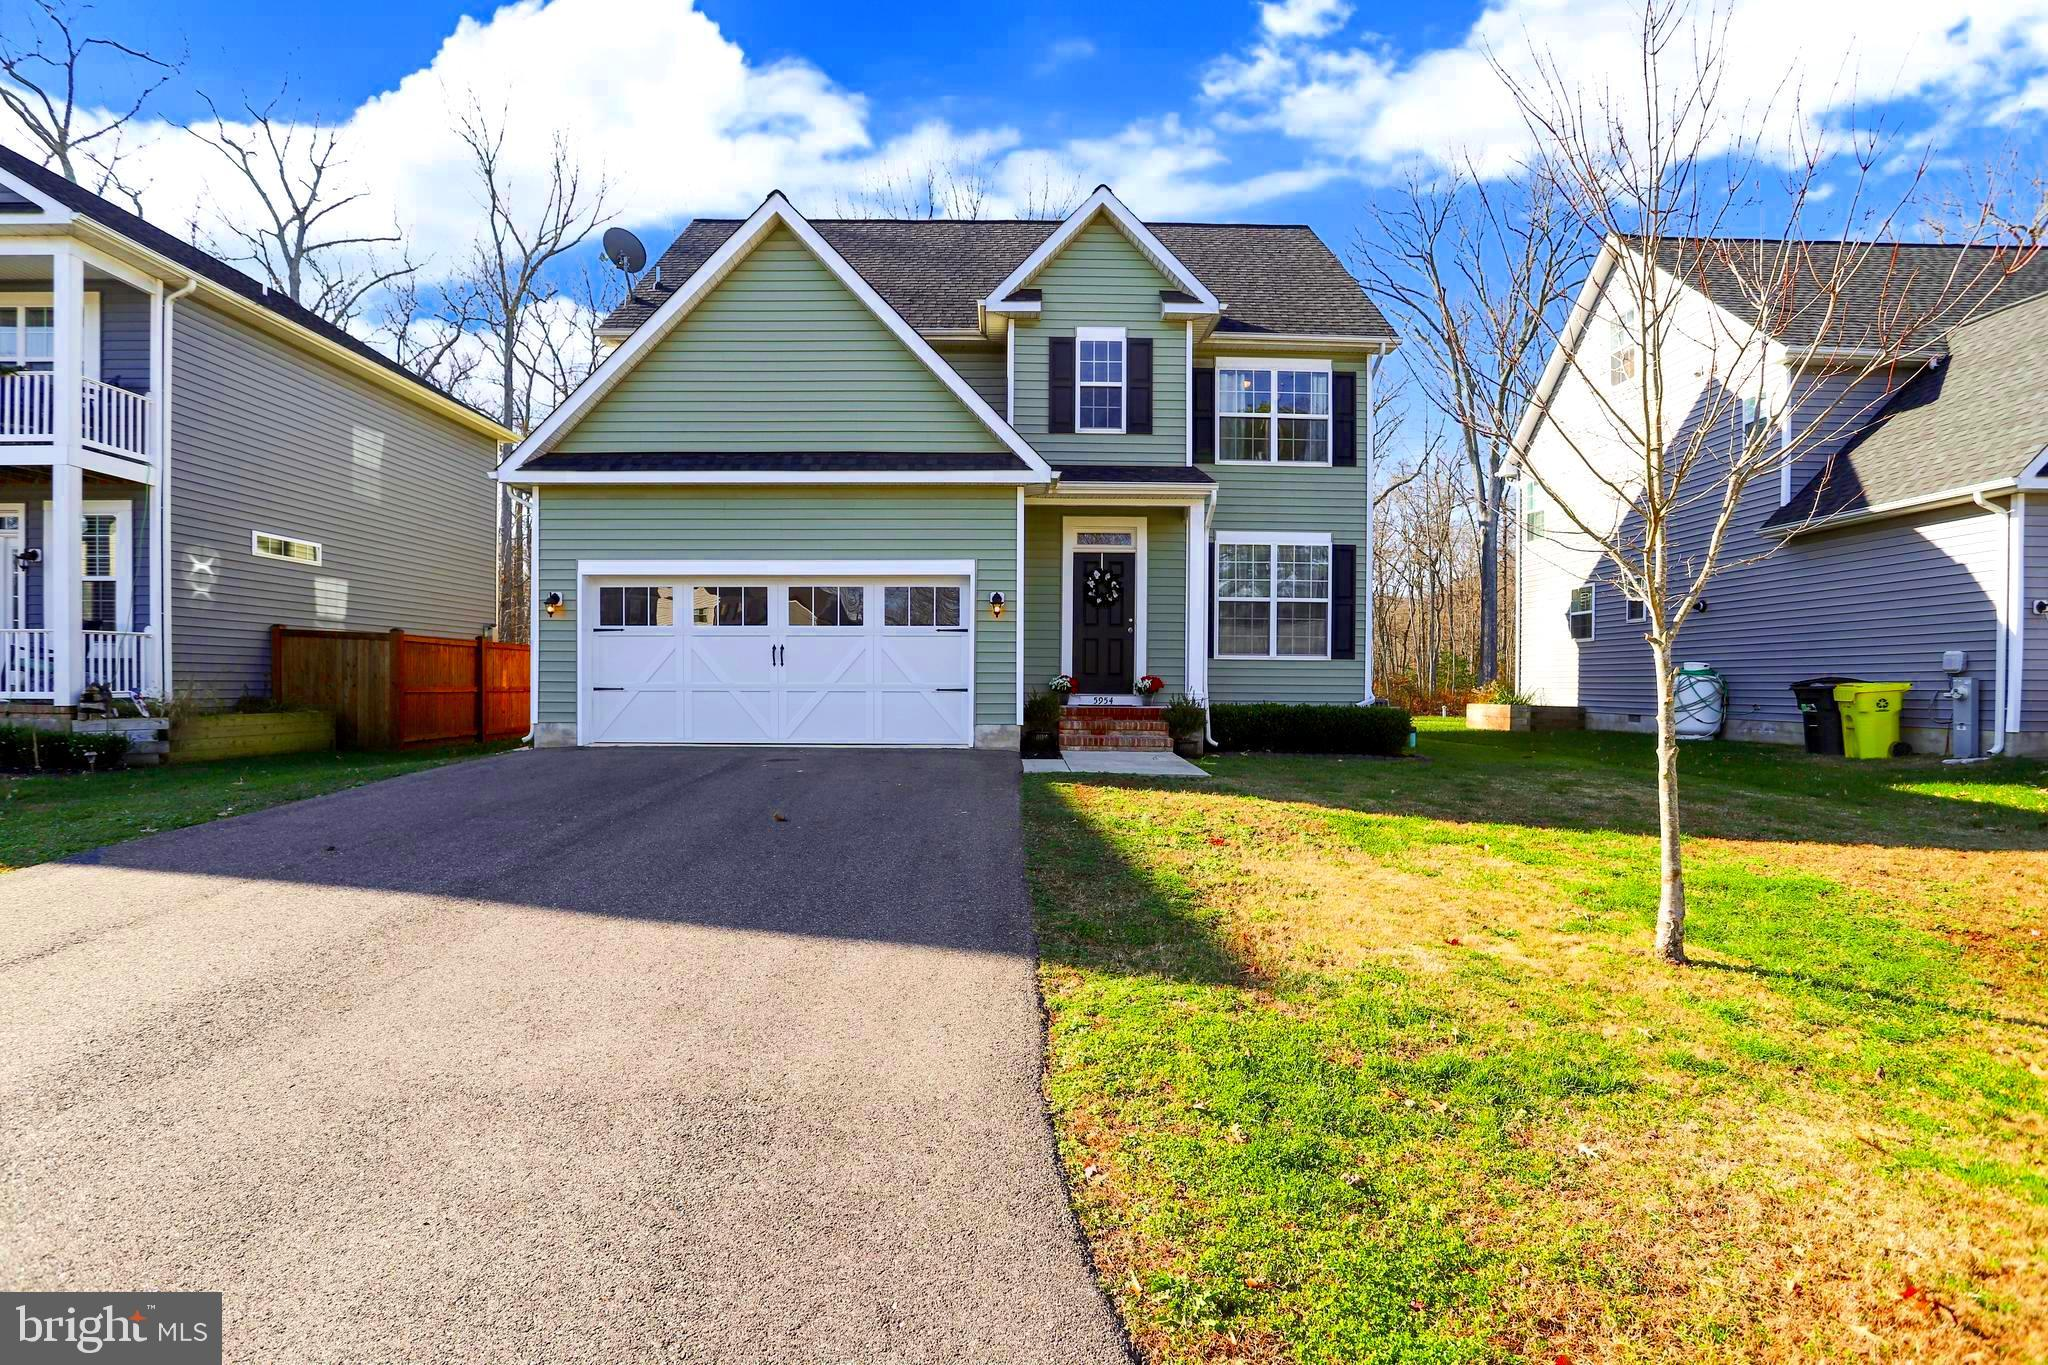 Why wait for new when you can purchase this 3 year old home now. You will love the spacious open flo